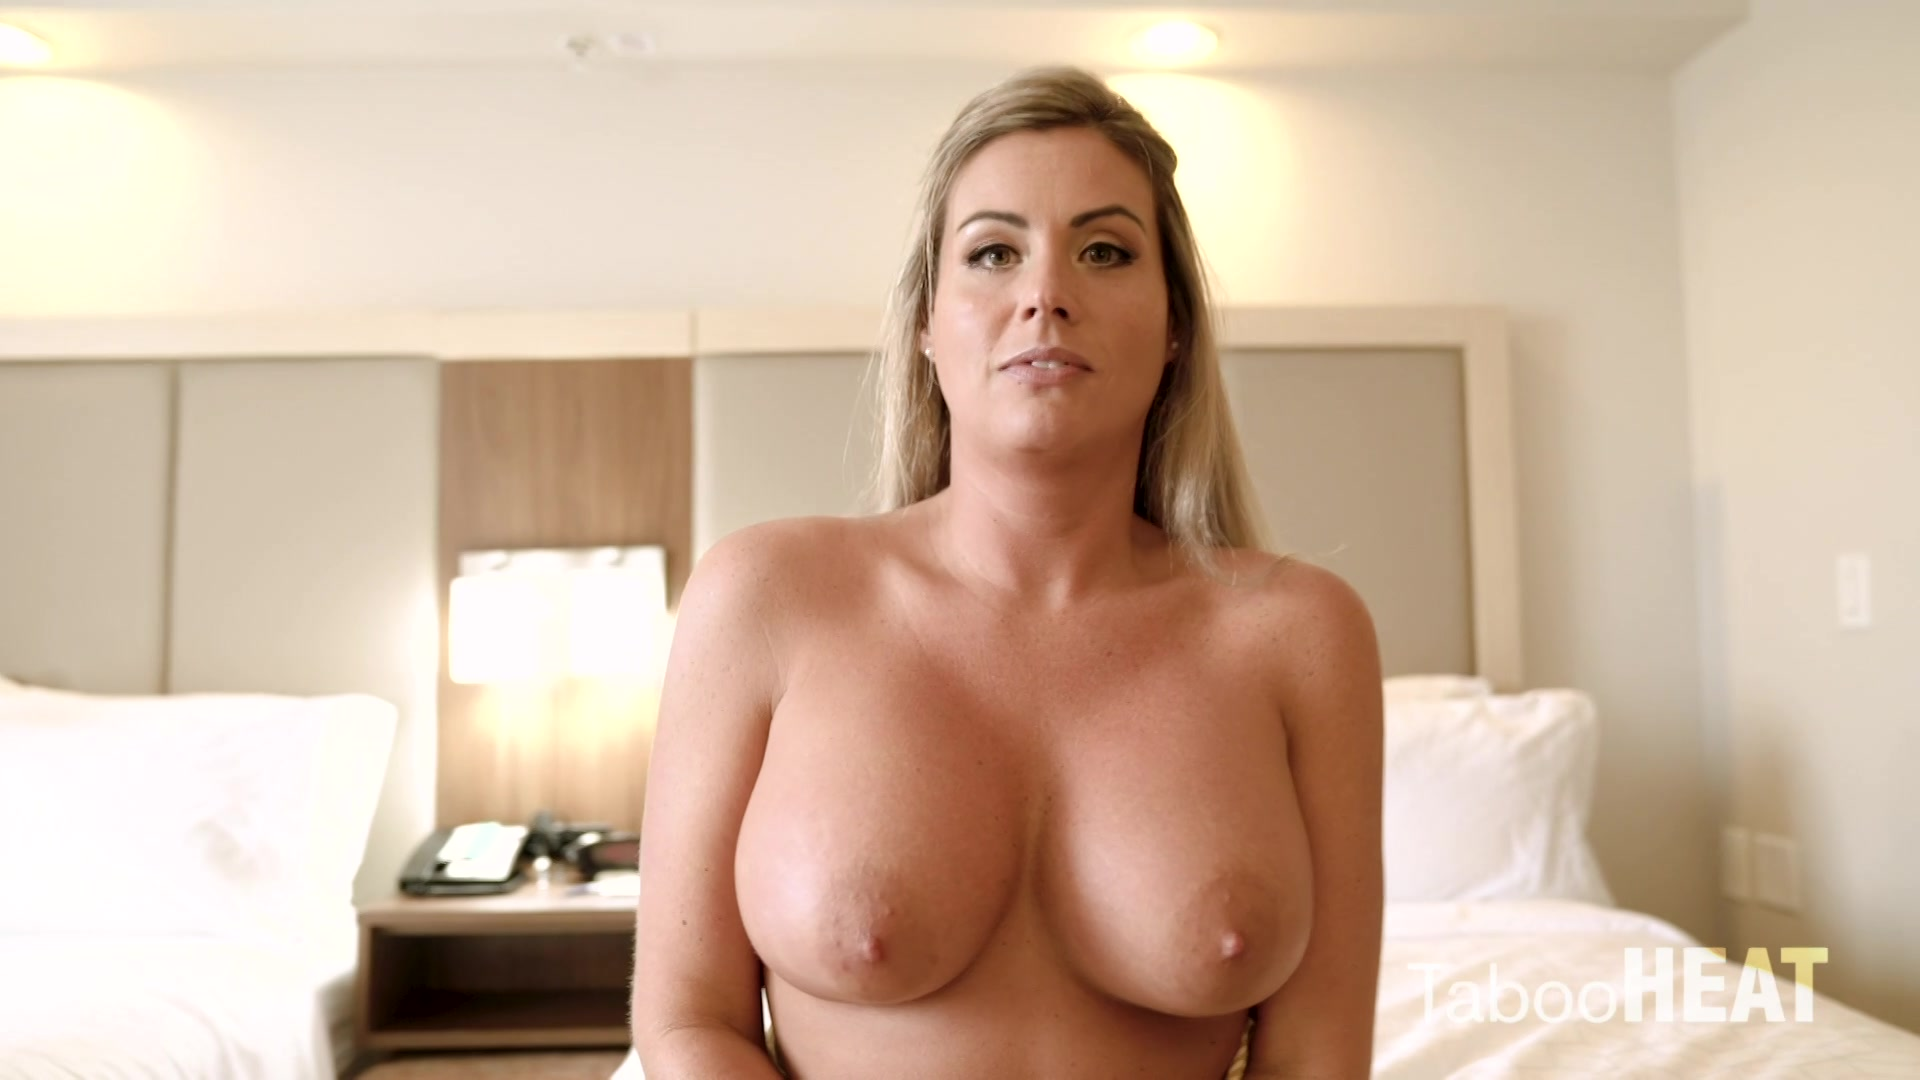 Coco Vandi In On Vacation With Stepmom Videos On Demand -2011